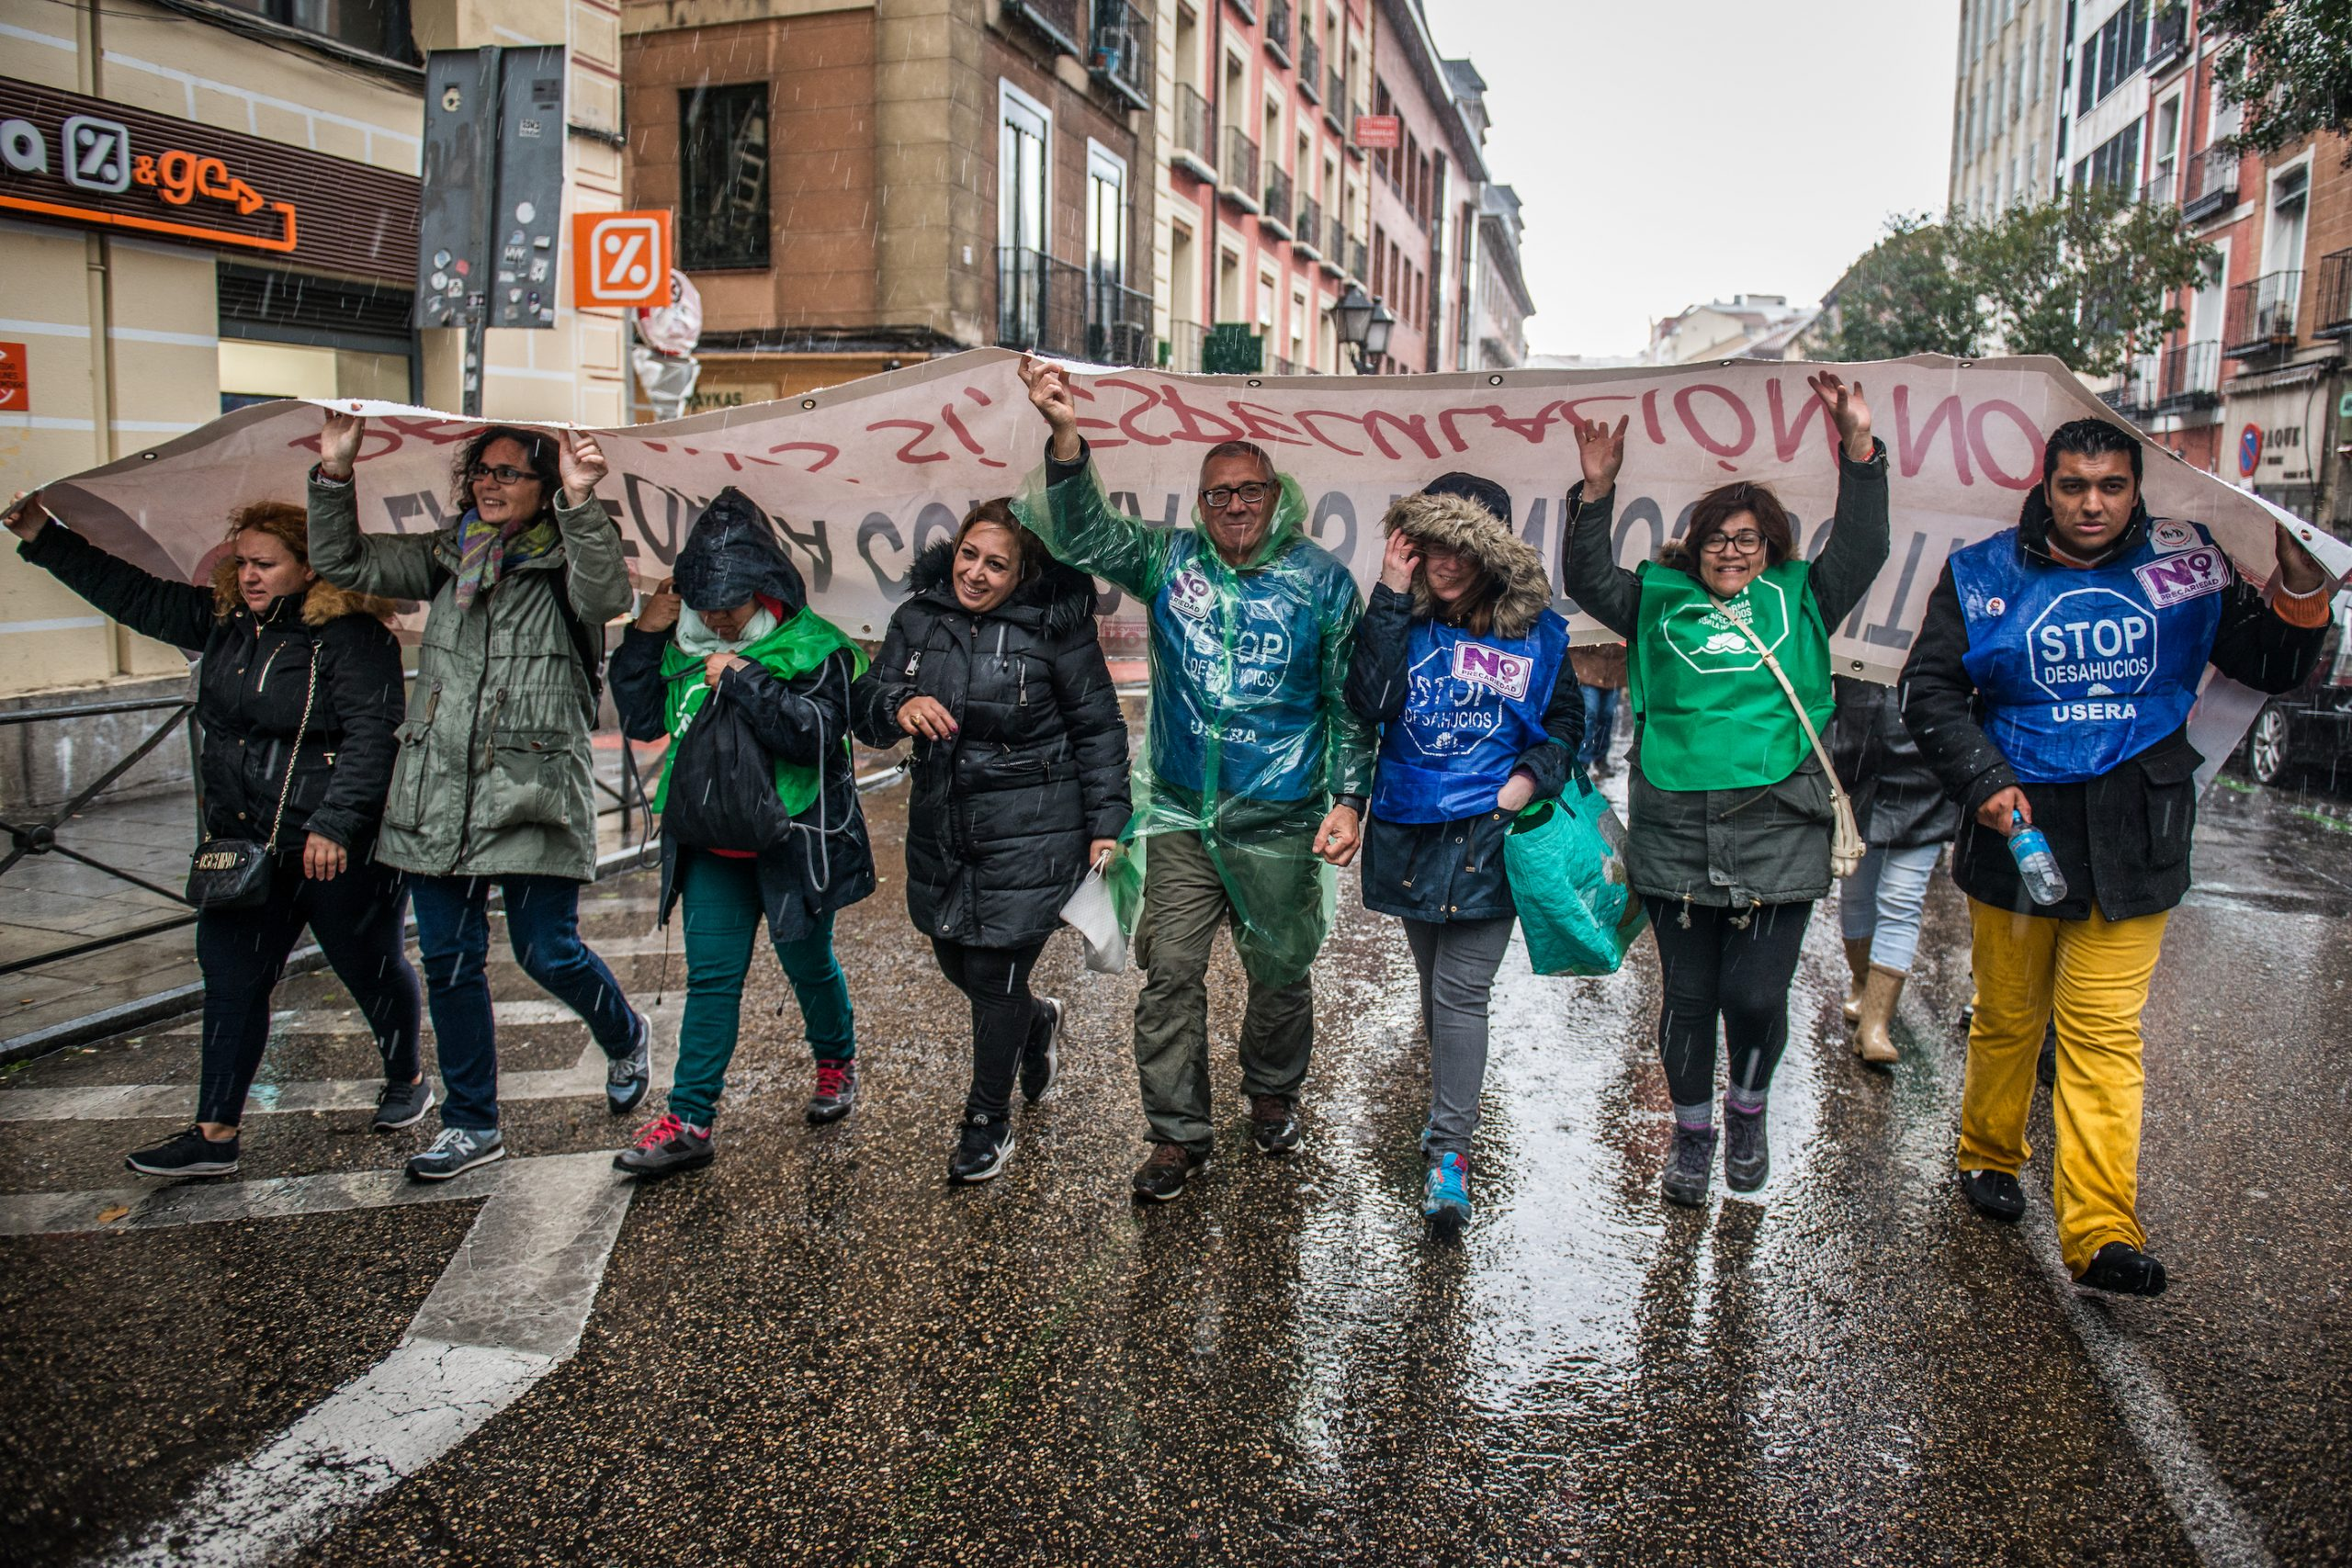 Civil rights marchers. Madrid, April 2019.